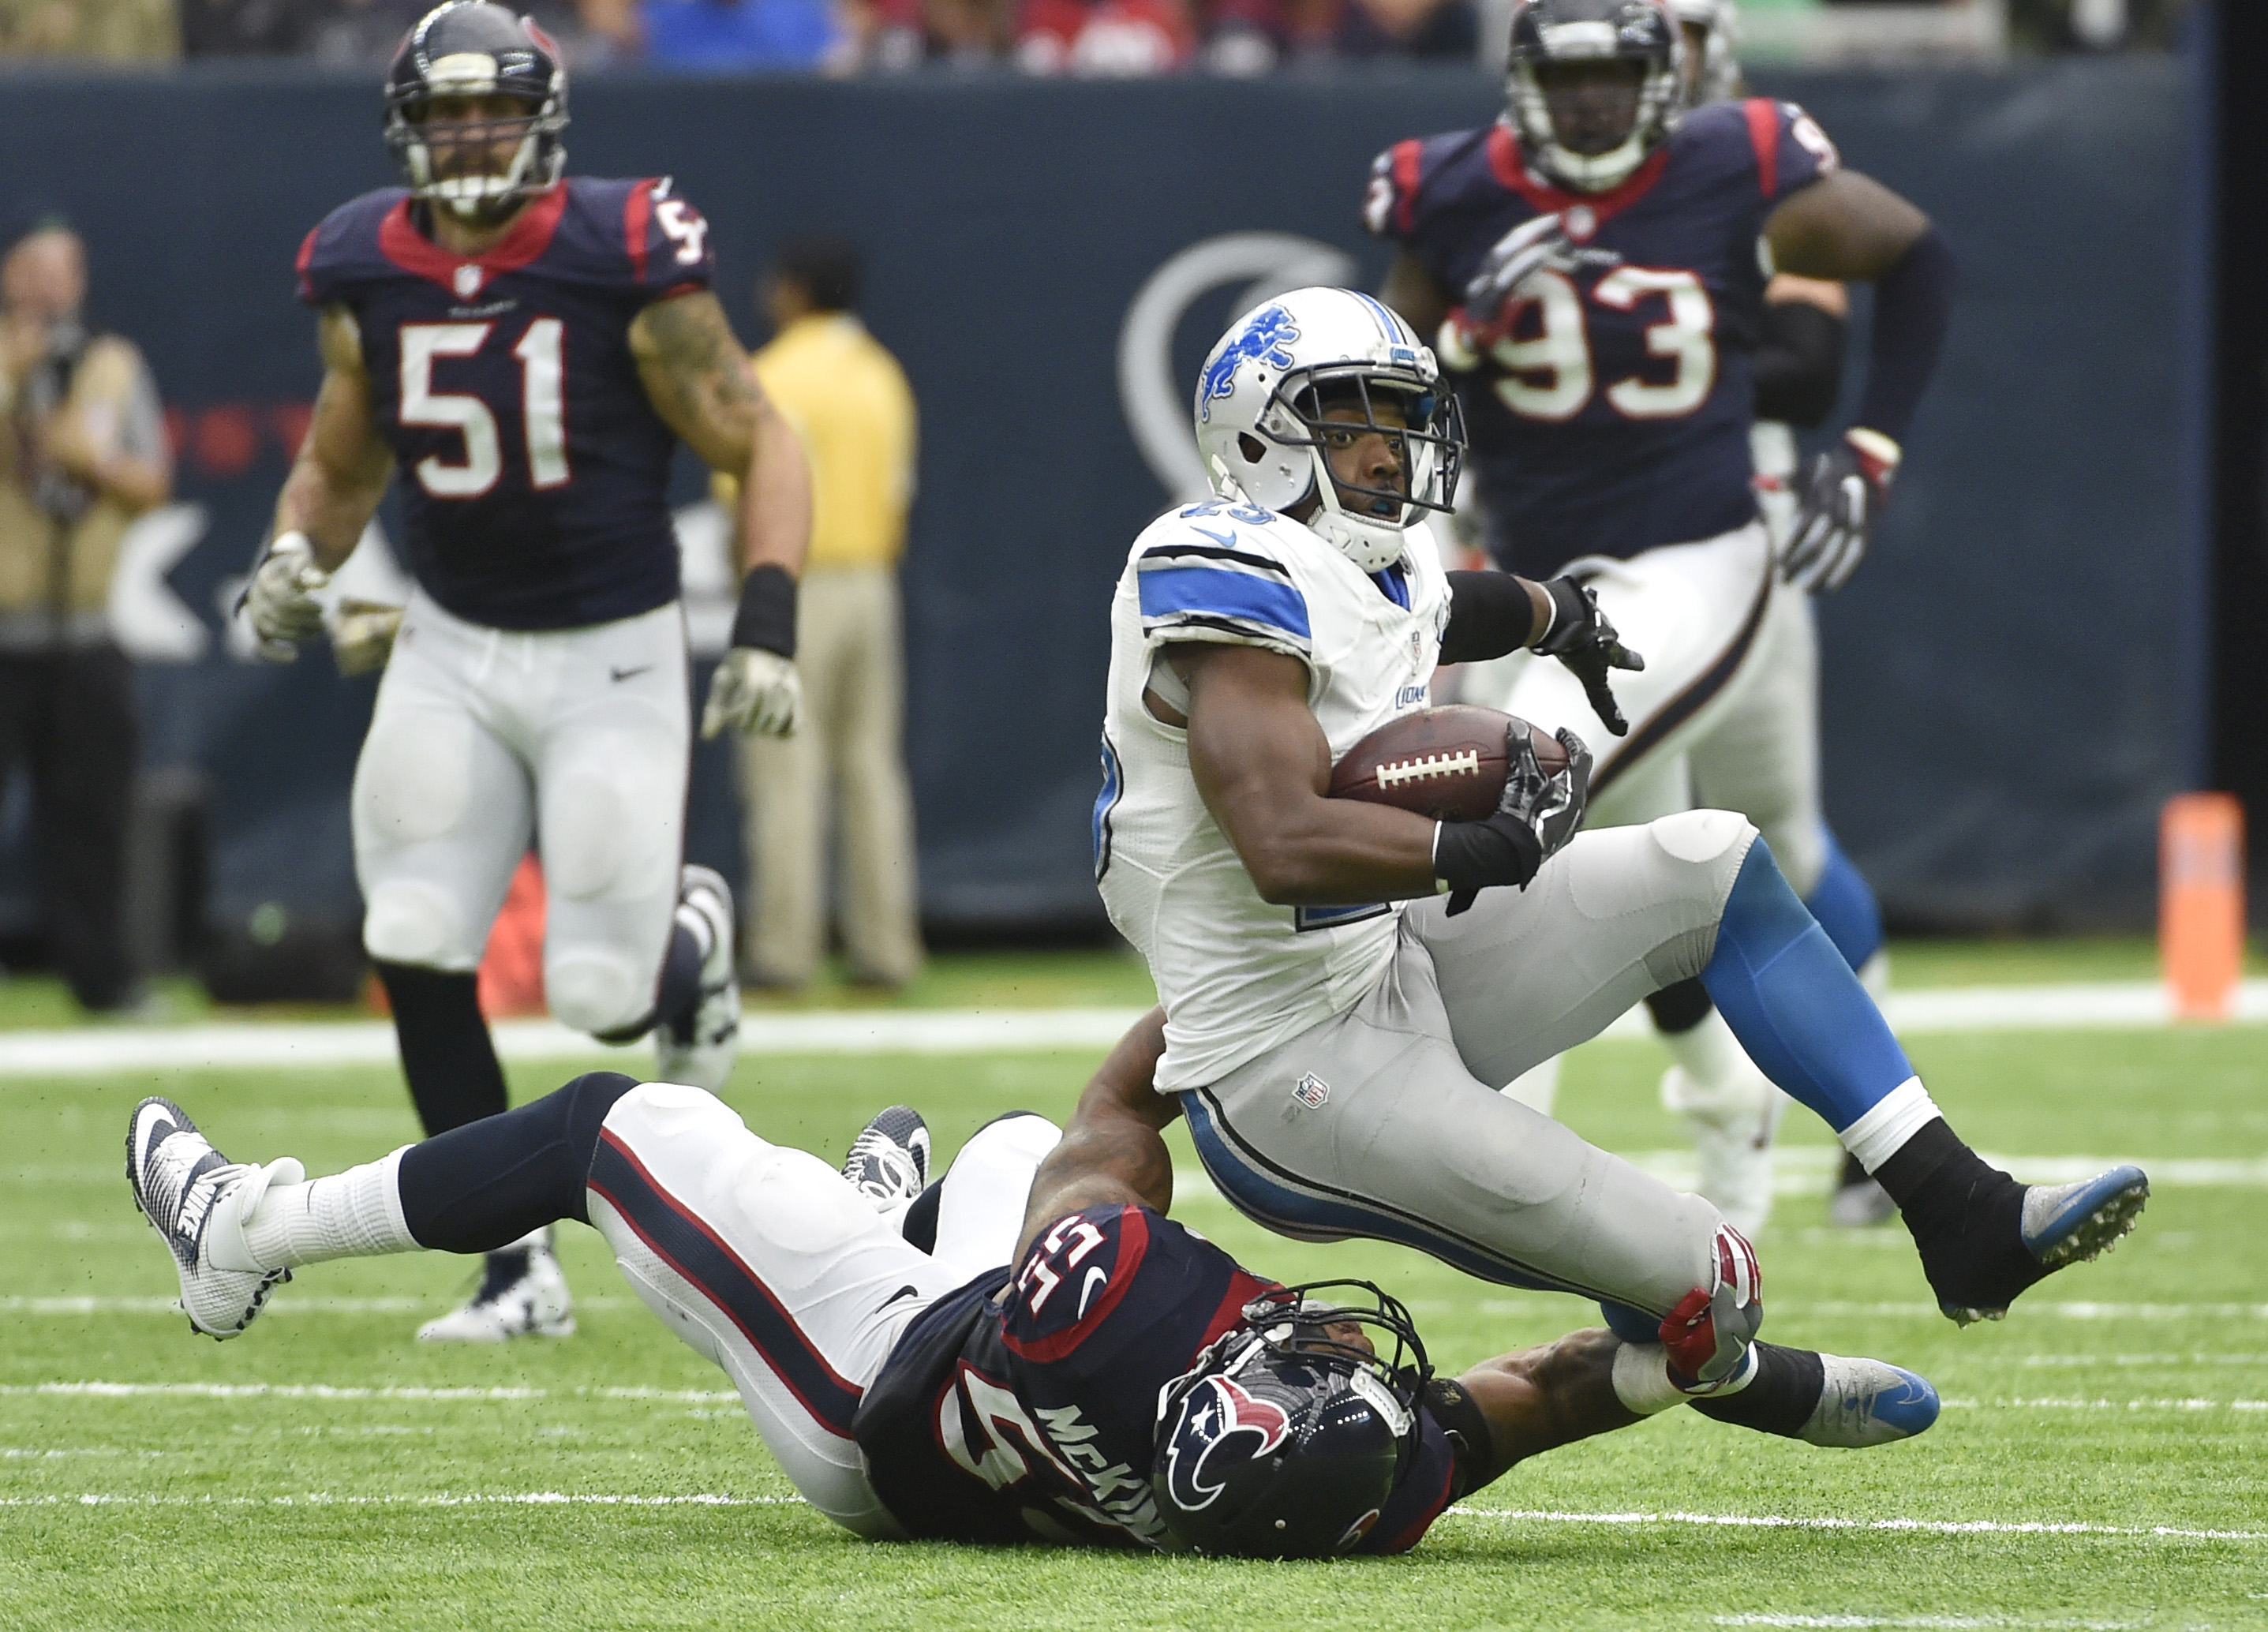 Detroit Lions running back Theo Riddick (25) is stopped by Houston Texans defender Benardrick McKinney (55) during the second half of an NFL football game Sunday, Oct. 30, 2016, in Houston. (AP Photo/Eric Christian Smith)